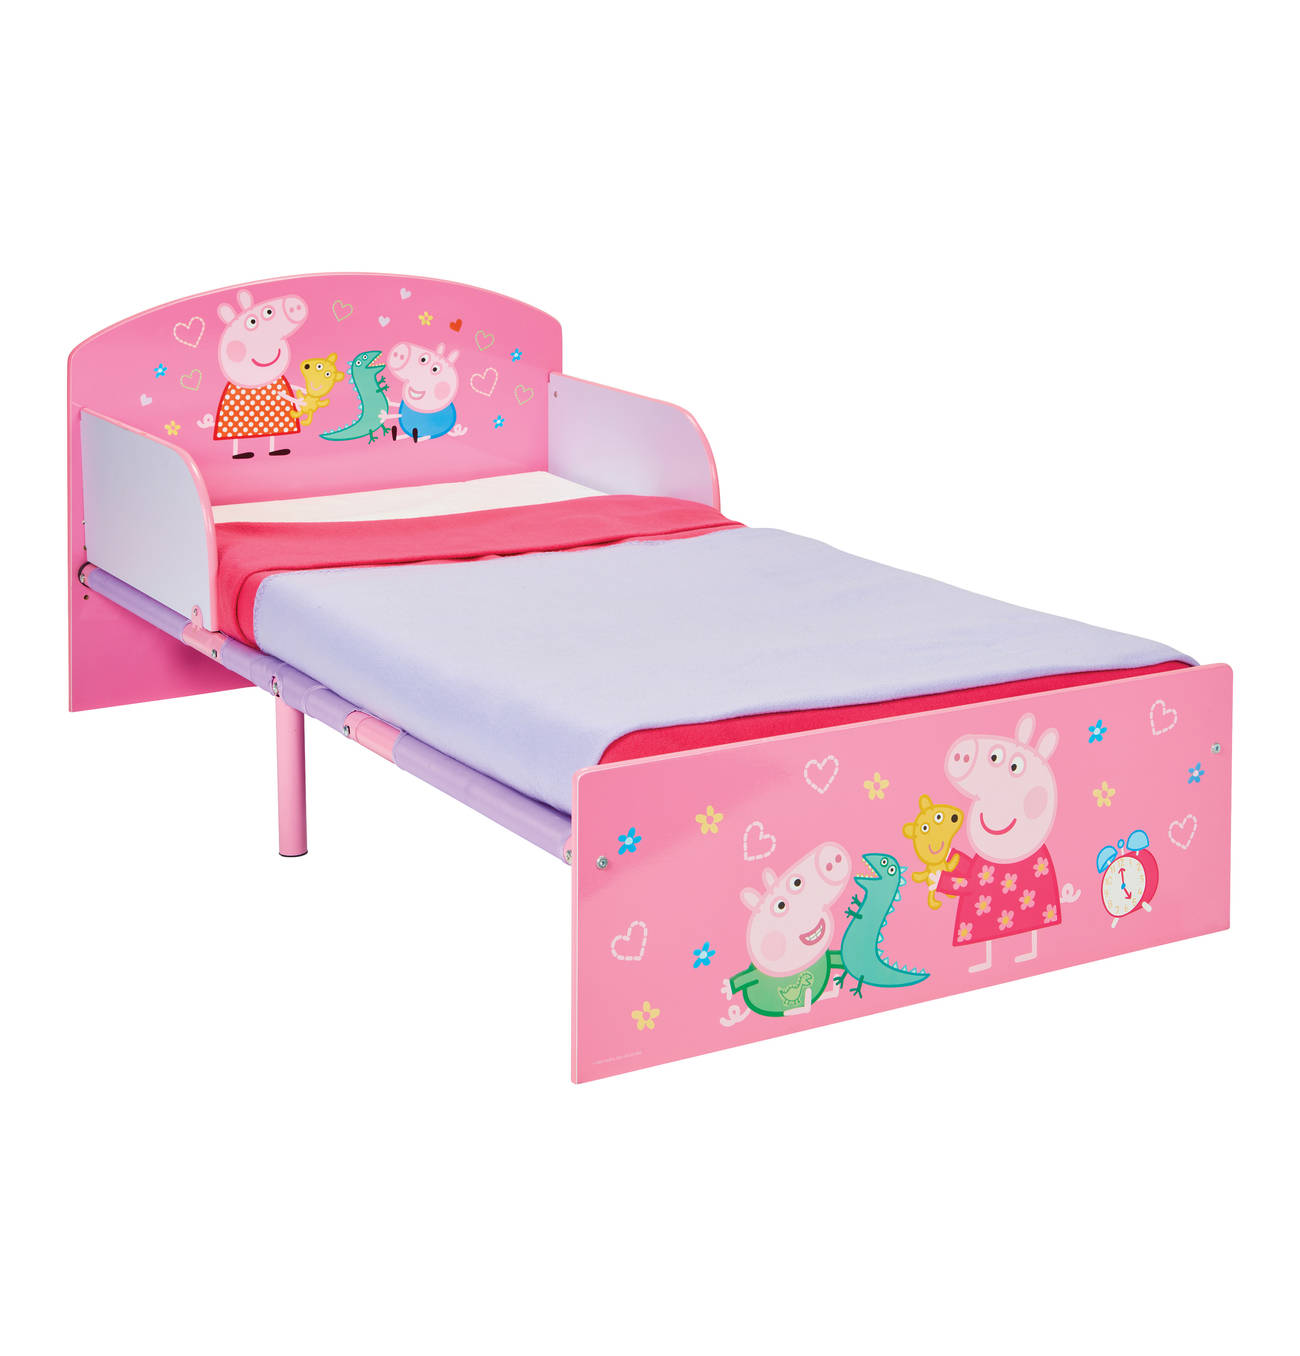 9 Baby Bed Toddler Car Bed 160x80 with Mattress Enfant Lit Kinderbett